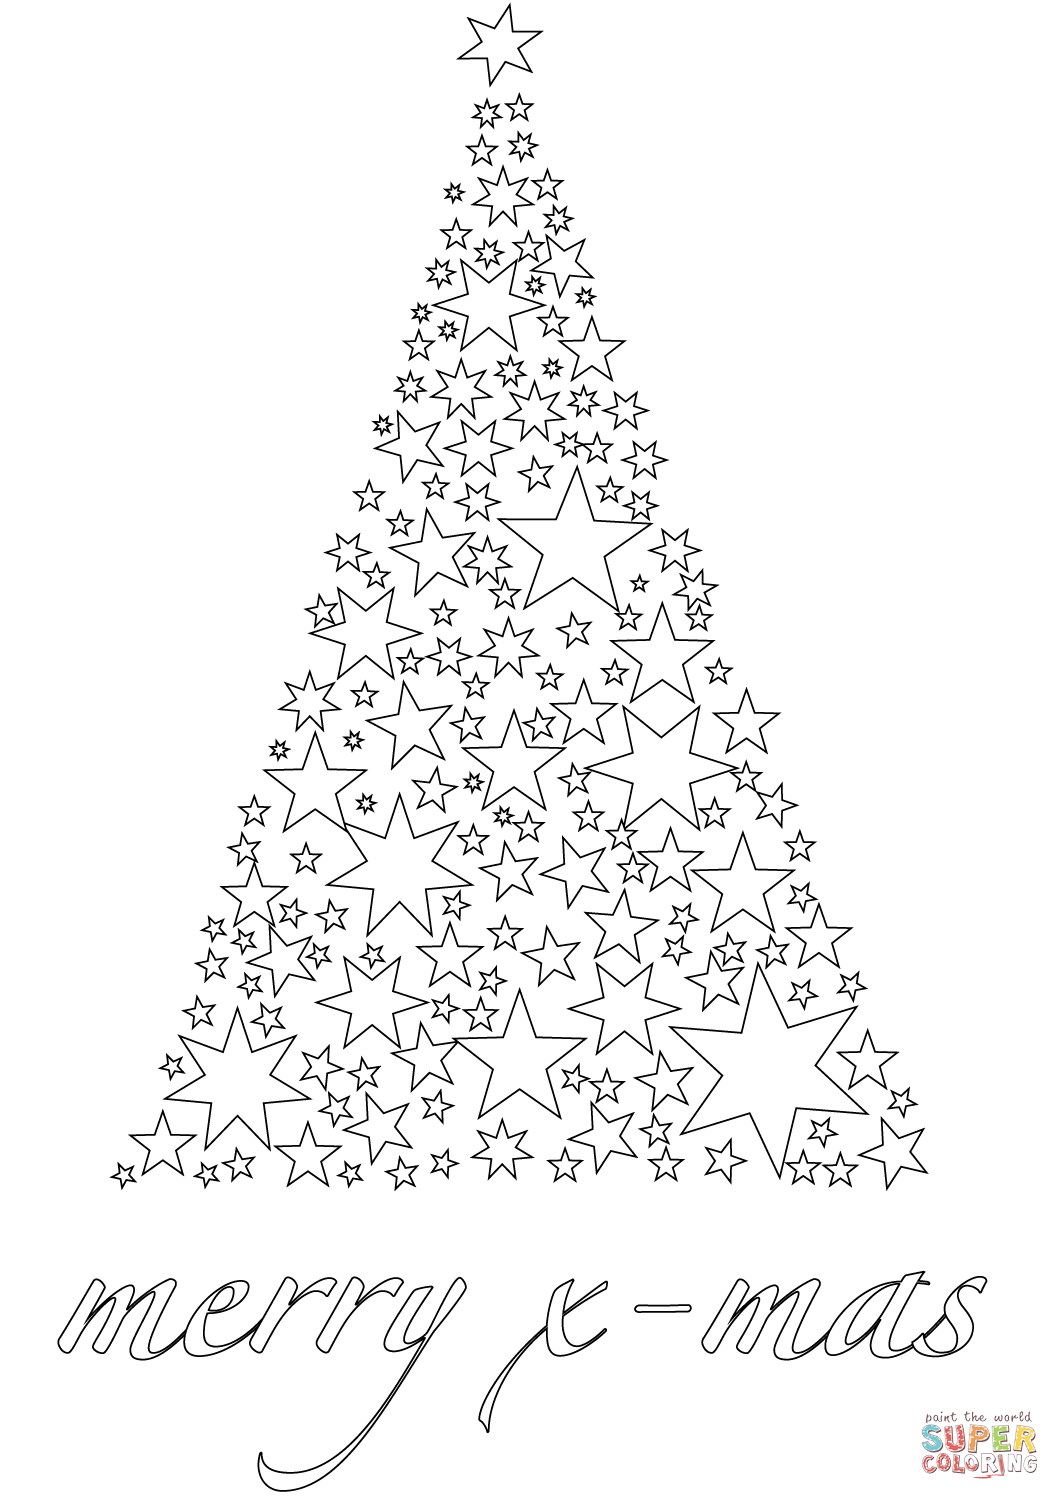 Christmas Card Colouring Pages With Merry Xmas Coloring Page Free Printable